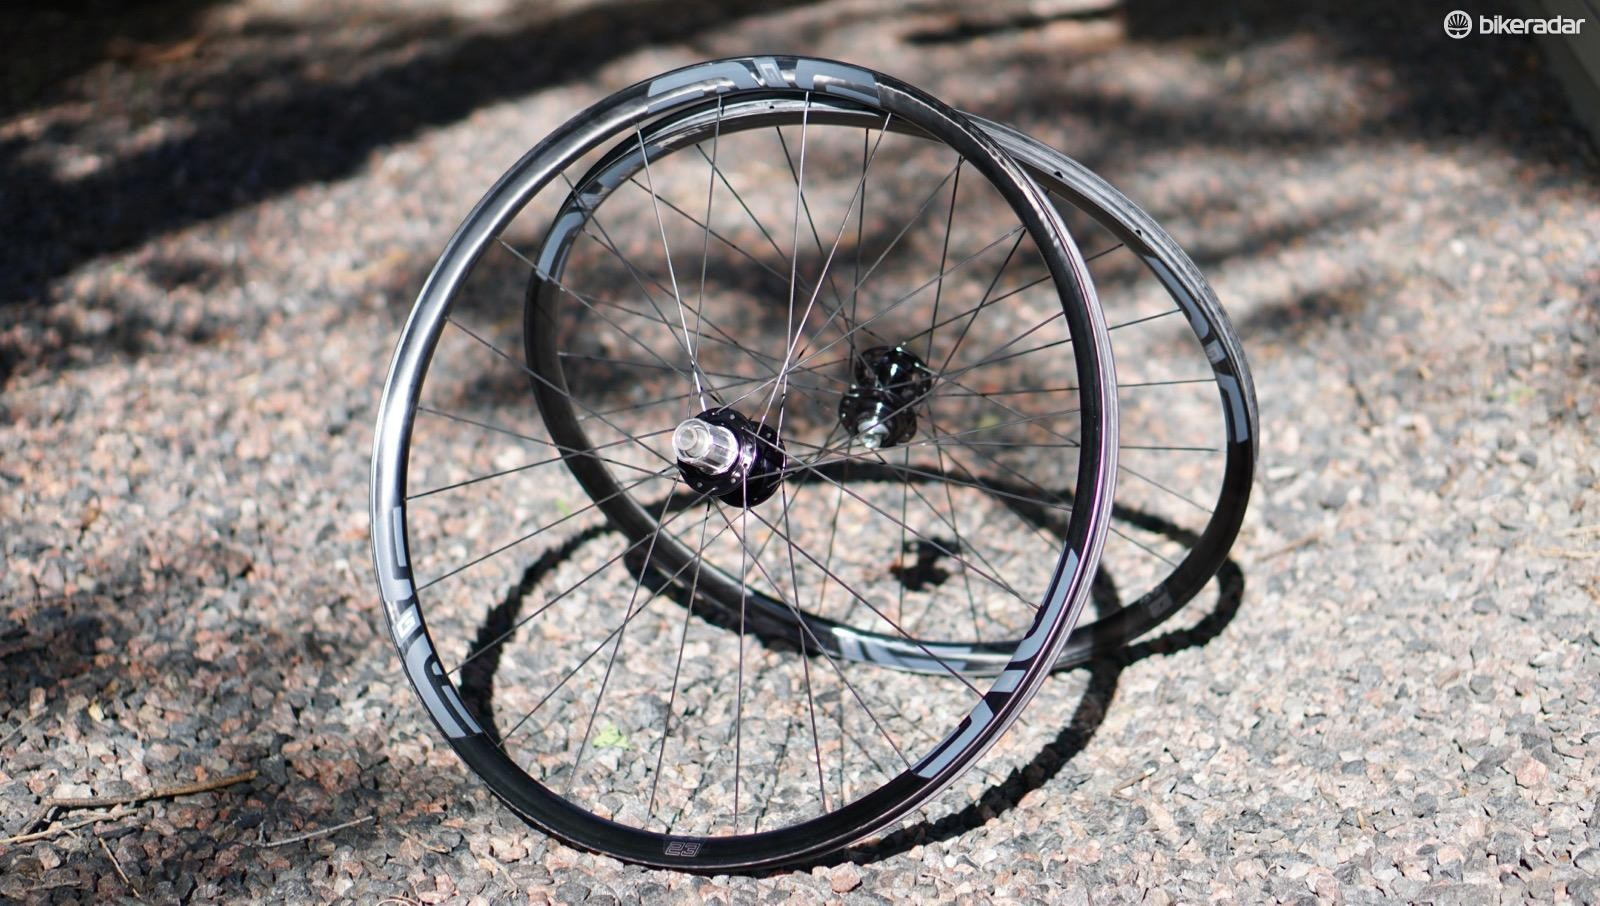 ENVE's new G23 wheels aren't rebadged cross-country hoops, but instead are dedicated wheels that are much softer vertically than XC race wheels